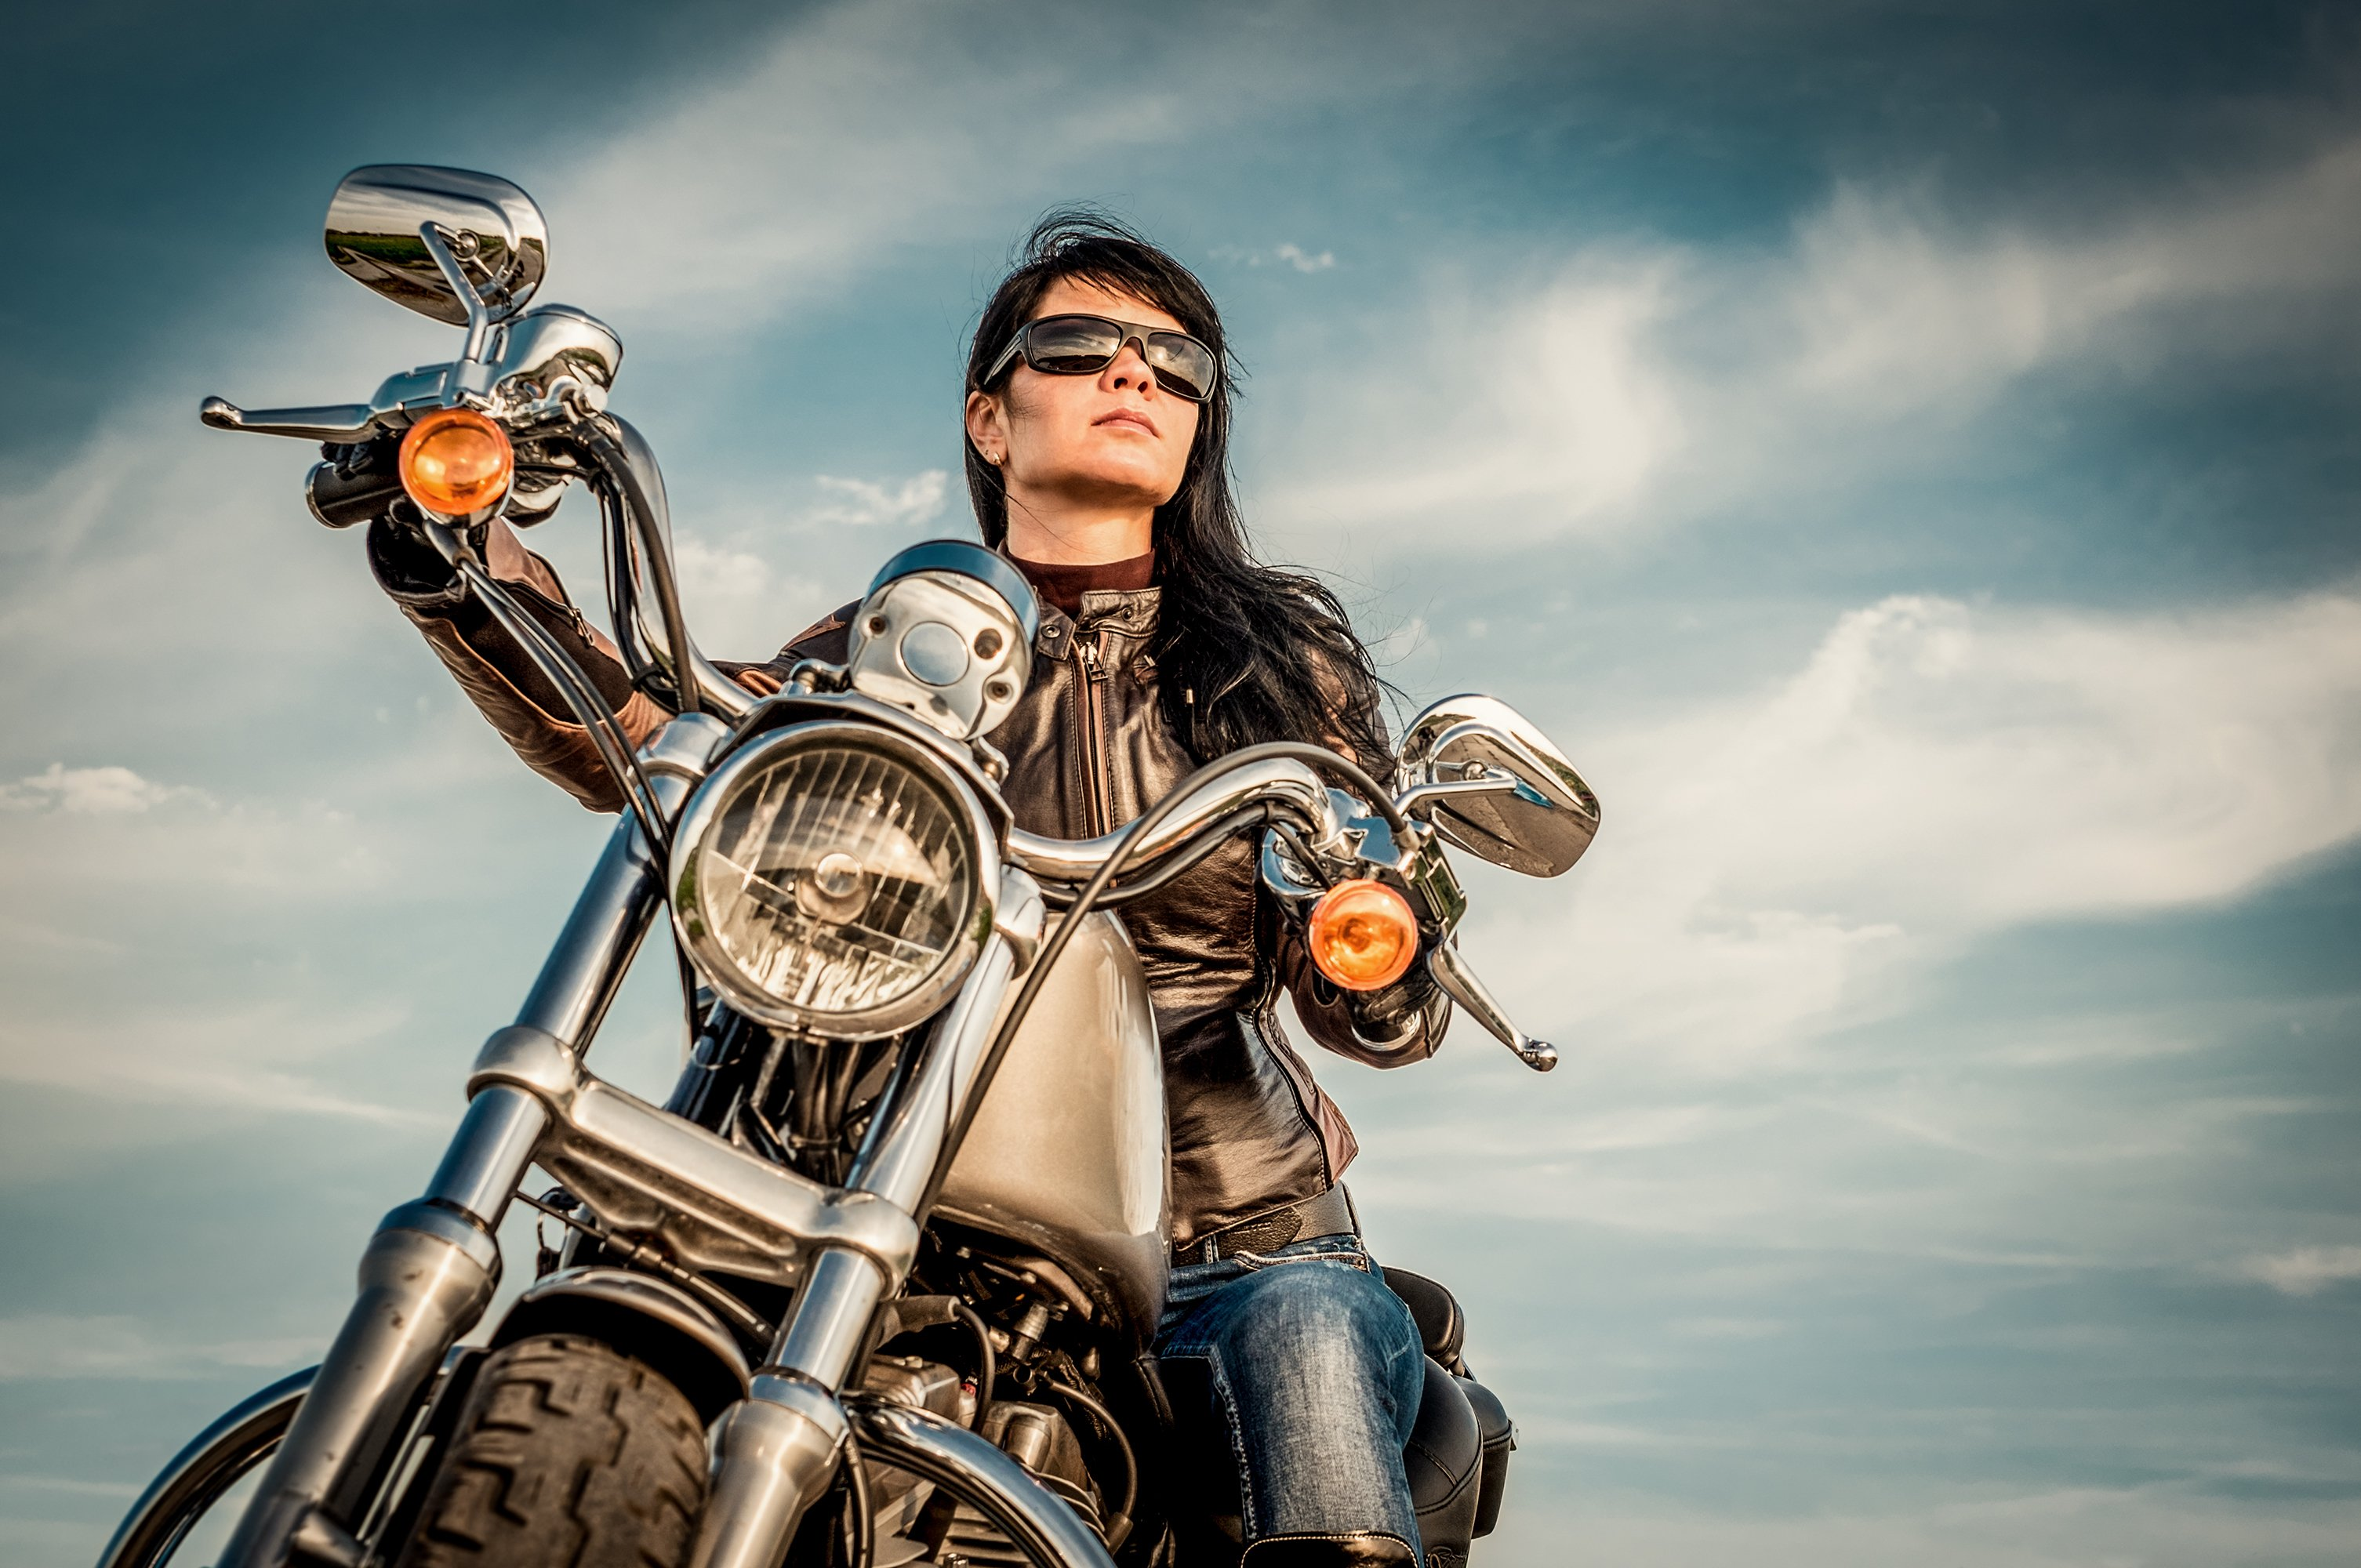 Woman on a motorcycle. Image credit: Shutterstock